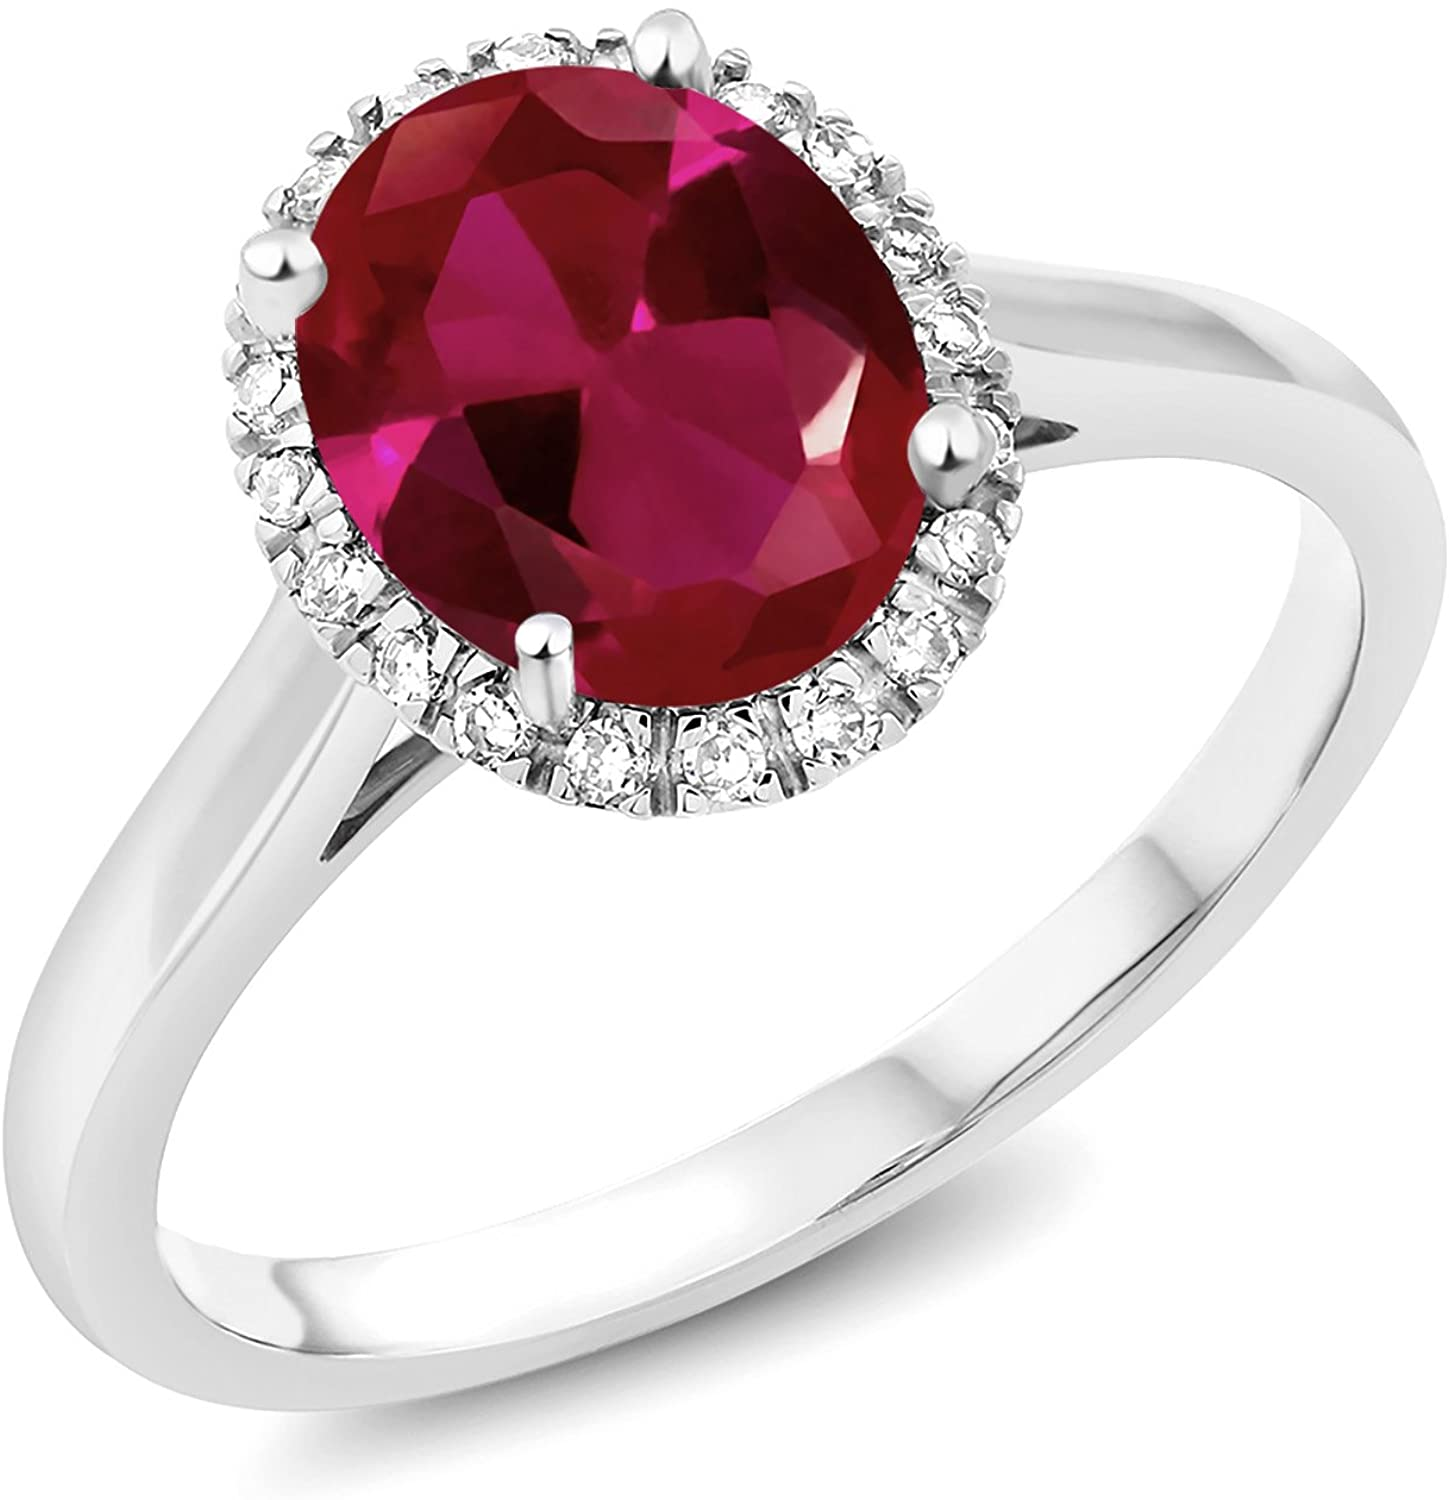 Gem Stone King 10K White Gold Red Created Ruby and Diamond Women's Engagement Ring (2.00 Ct Oval Cut Available in size 5, 6, 7, 8, 9)